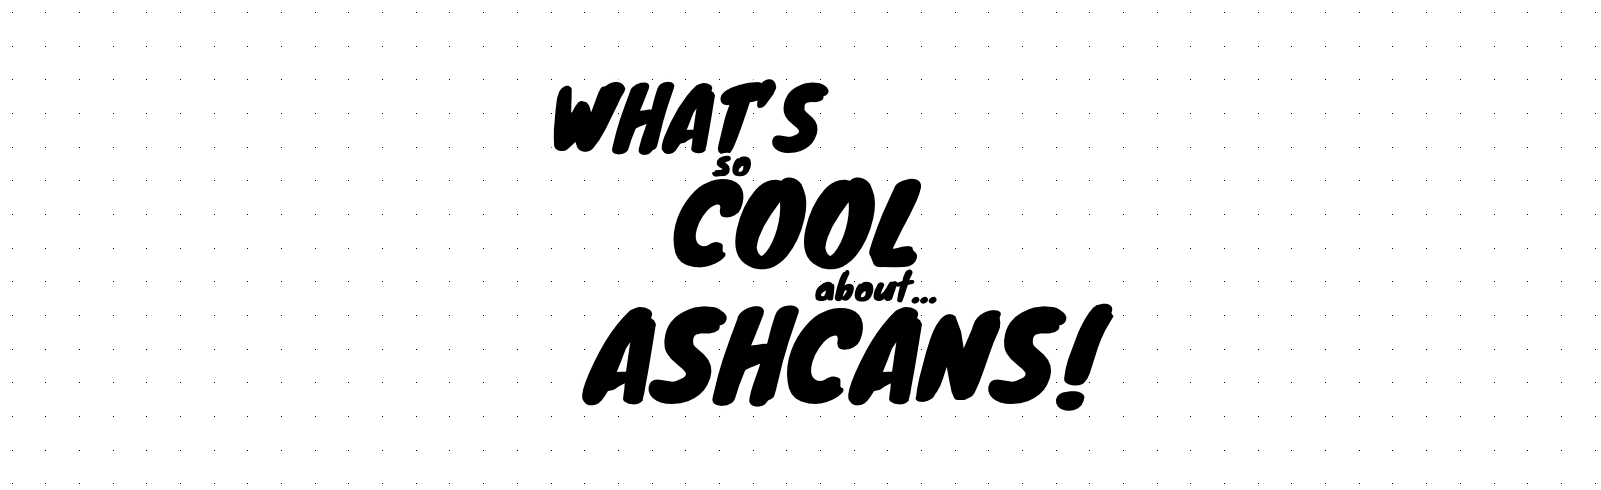 What's So Cool About Ashcans?